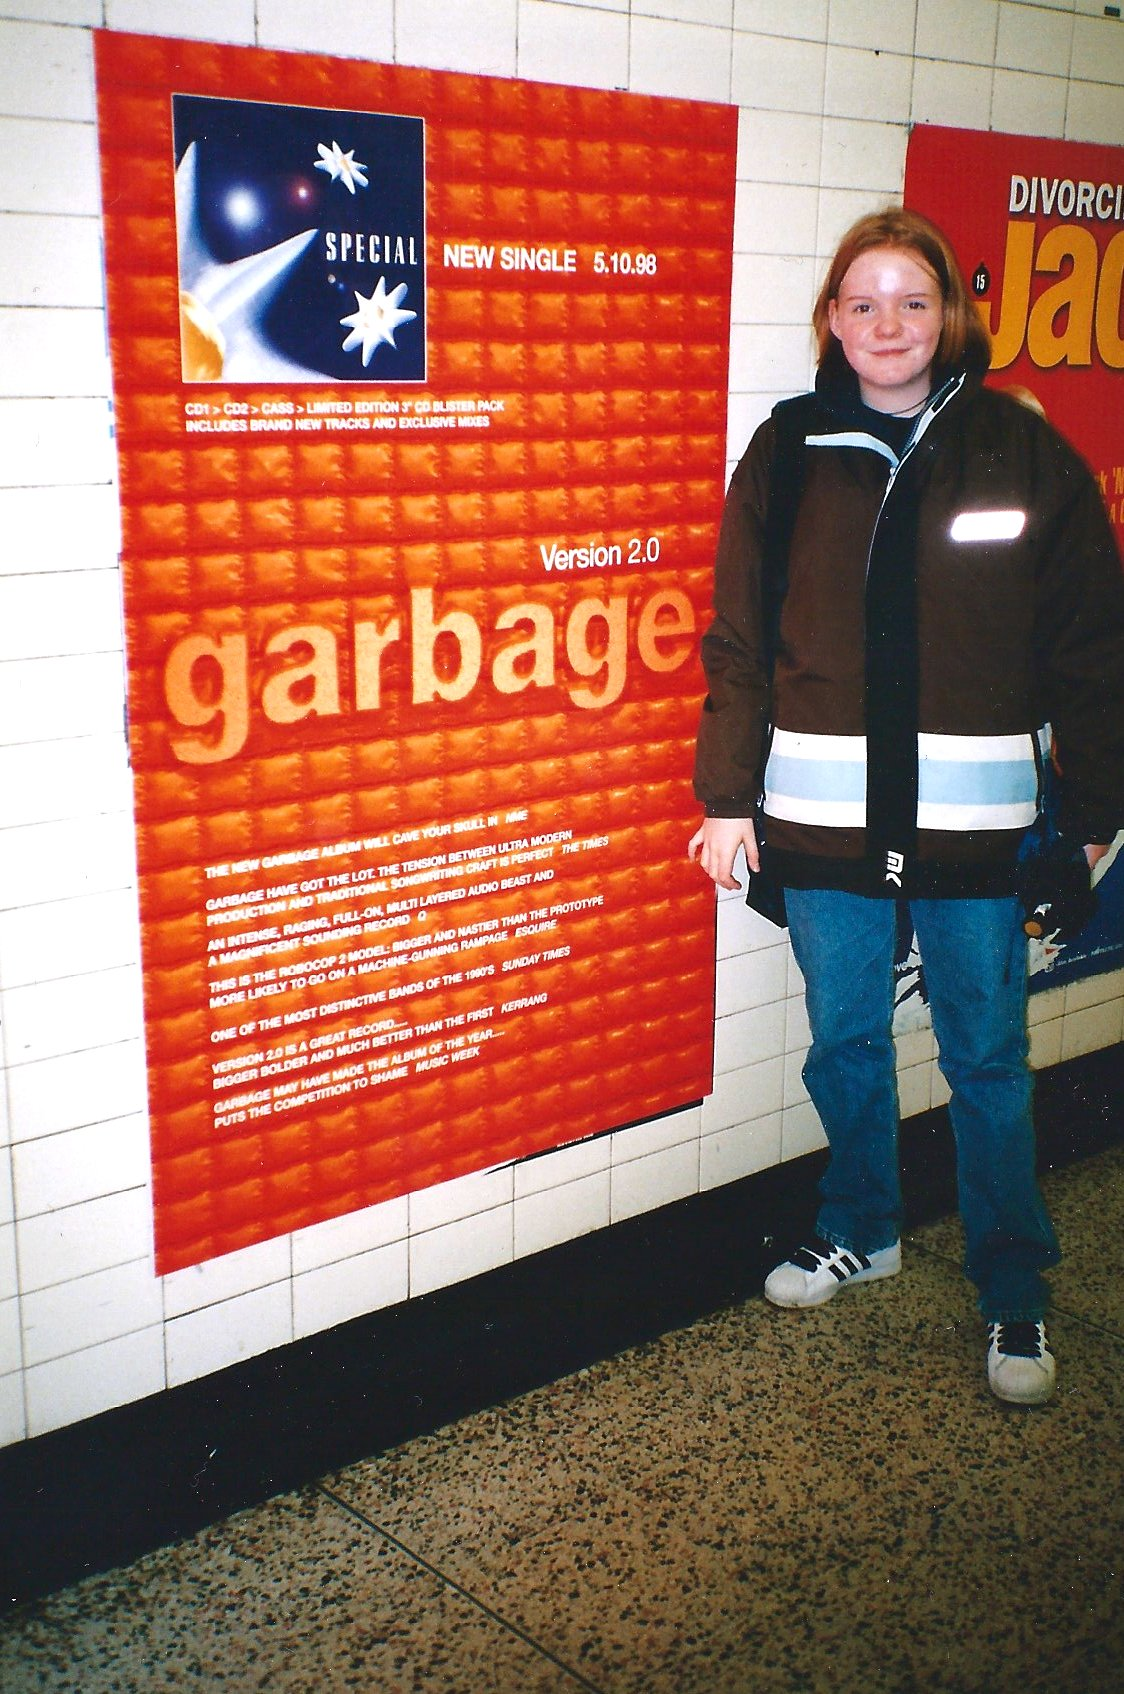 Nina 1998 vor einem Garbage Version 2.0 Plakat in London